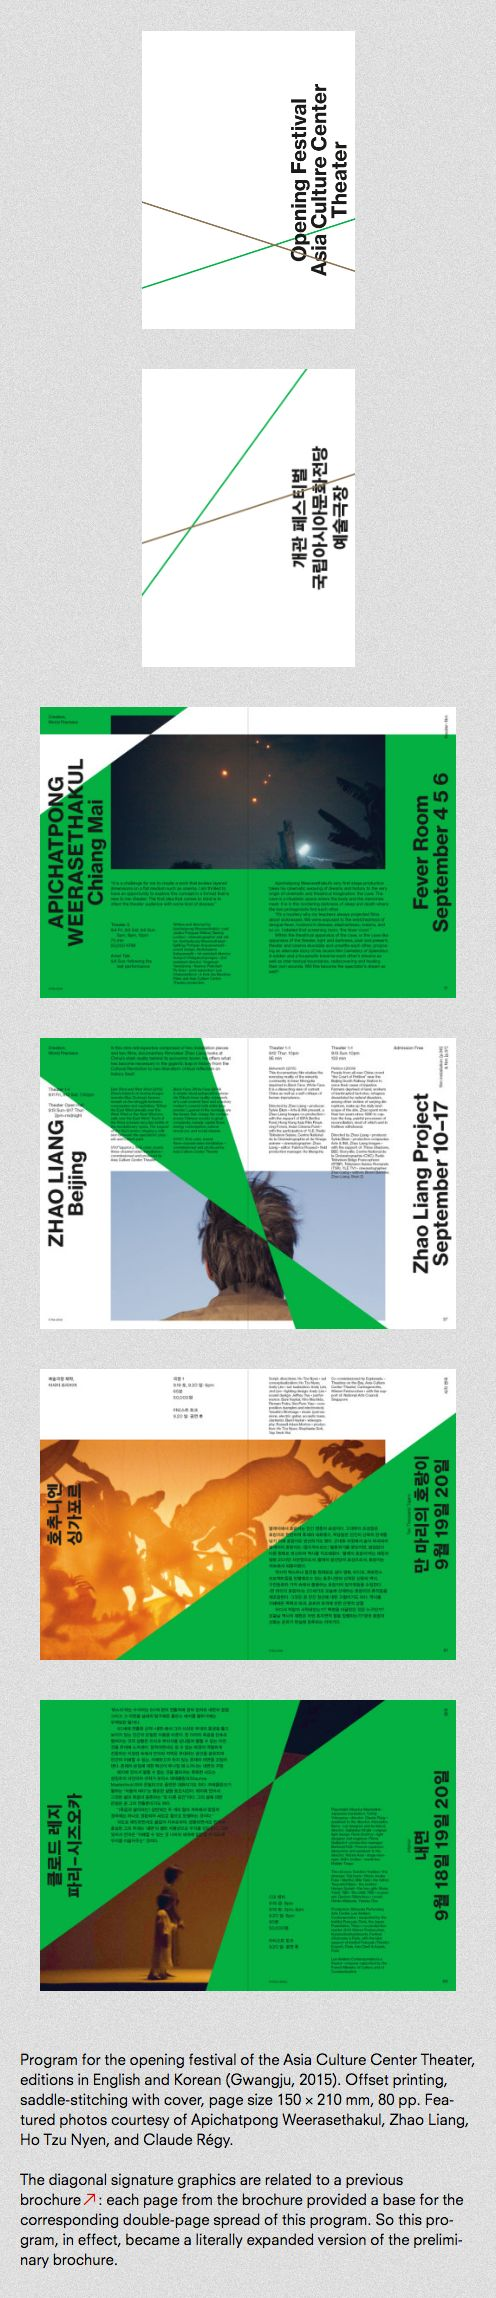 Program for the opening festival of the Asia Culture Center Theater, editions in English and Korean (Gwangju, 2015). Offset printing, saddle-stitching with cover, page size 150 x 210 mm, 80 pp. // The diagonal signature graphics are related to a previous brochure↗︎: each page from the brochure provided a base for the corresponding double-page spread of this program. So this program, in effect, became a literally expanded version of the preliminary brochure.